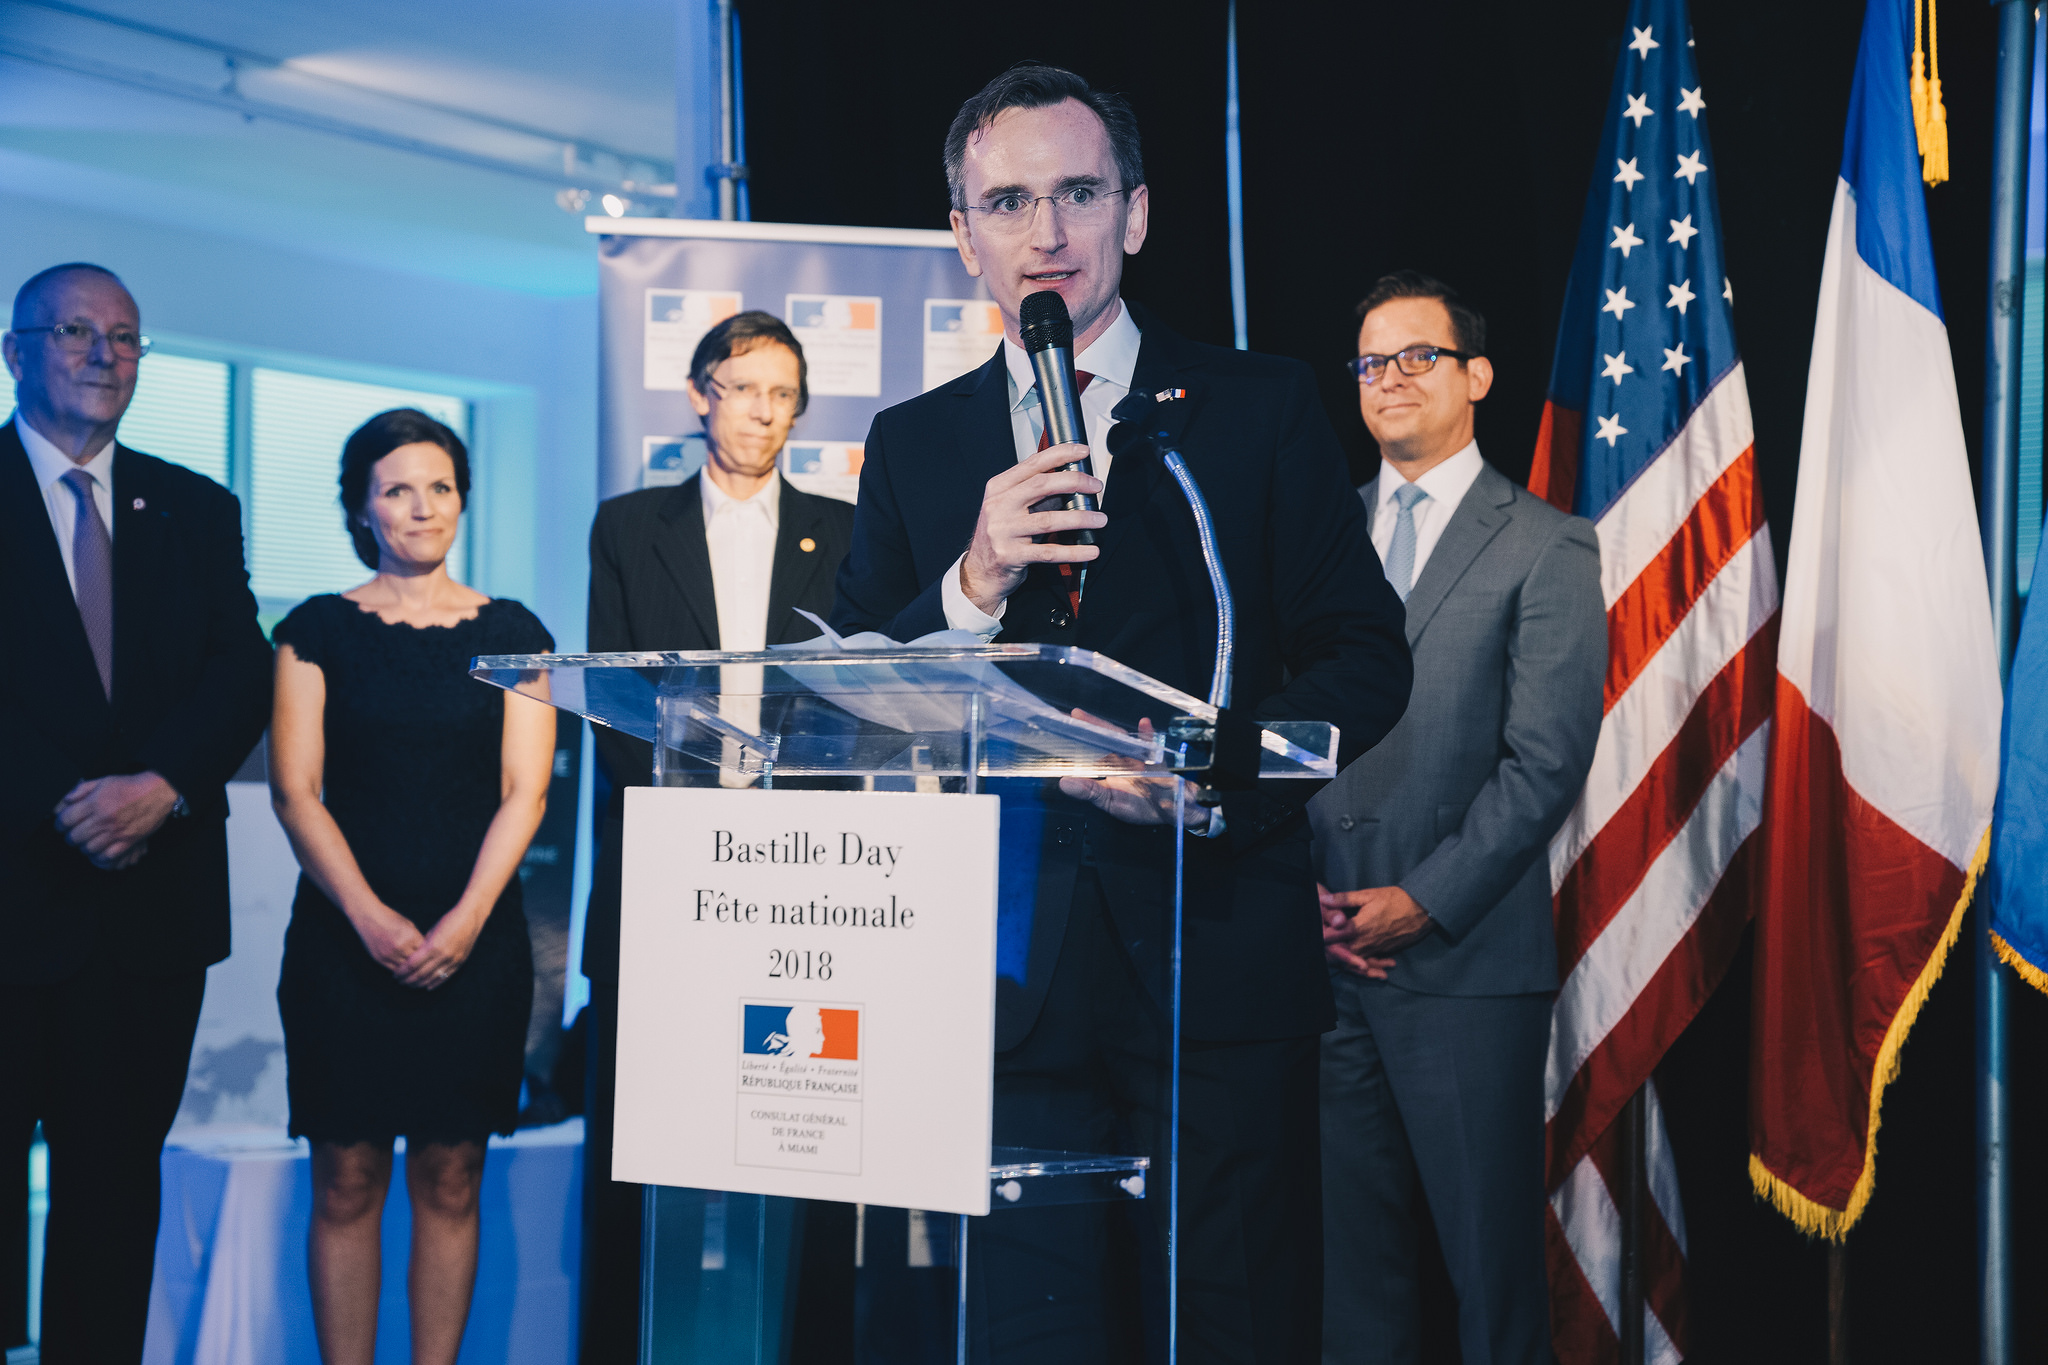 In Front: French Consul, Clément Leclerc | Left to Right:Xavier Capdevielle (conseiller consulaire), Mme. Erin Leclerc, Philip Stoddard (Mayor of South Miami), Dean Trantalis (Mayor of Fort Lauderdale) and the Lieutenant-Gouverneur of Florida : Carlos López-Cantera